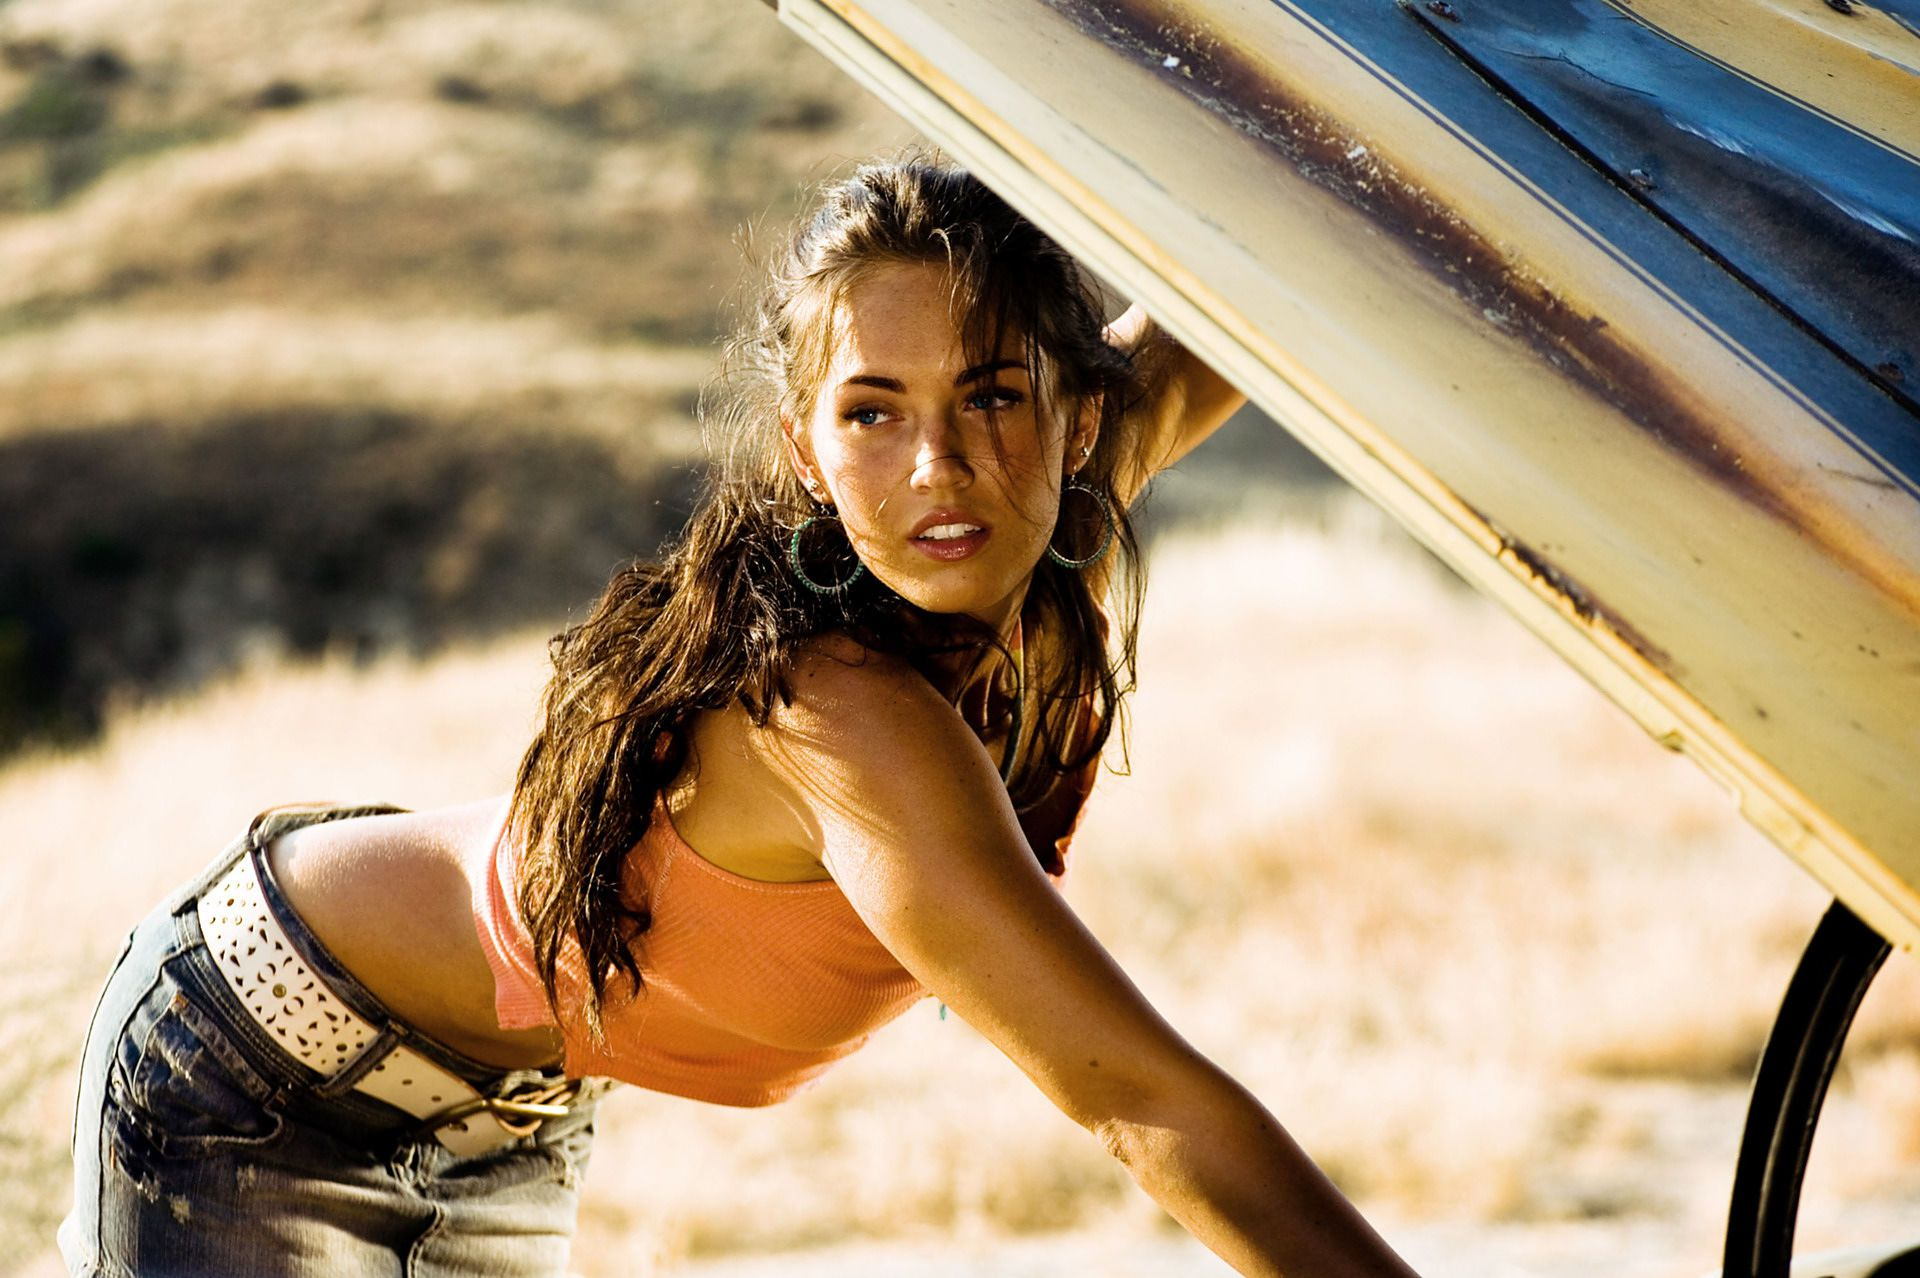 Megan Fox's 10 Sexiest Movie Roles